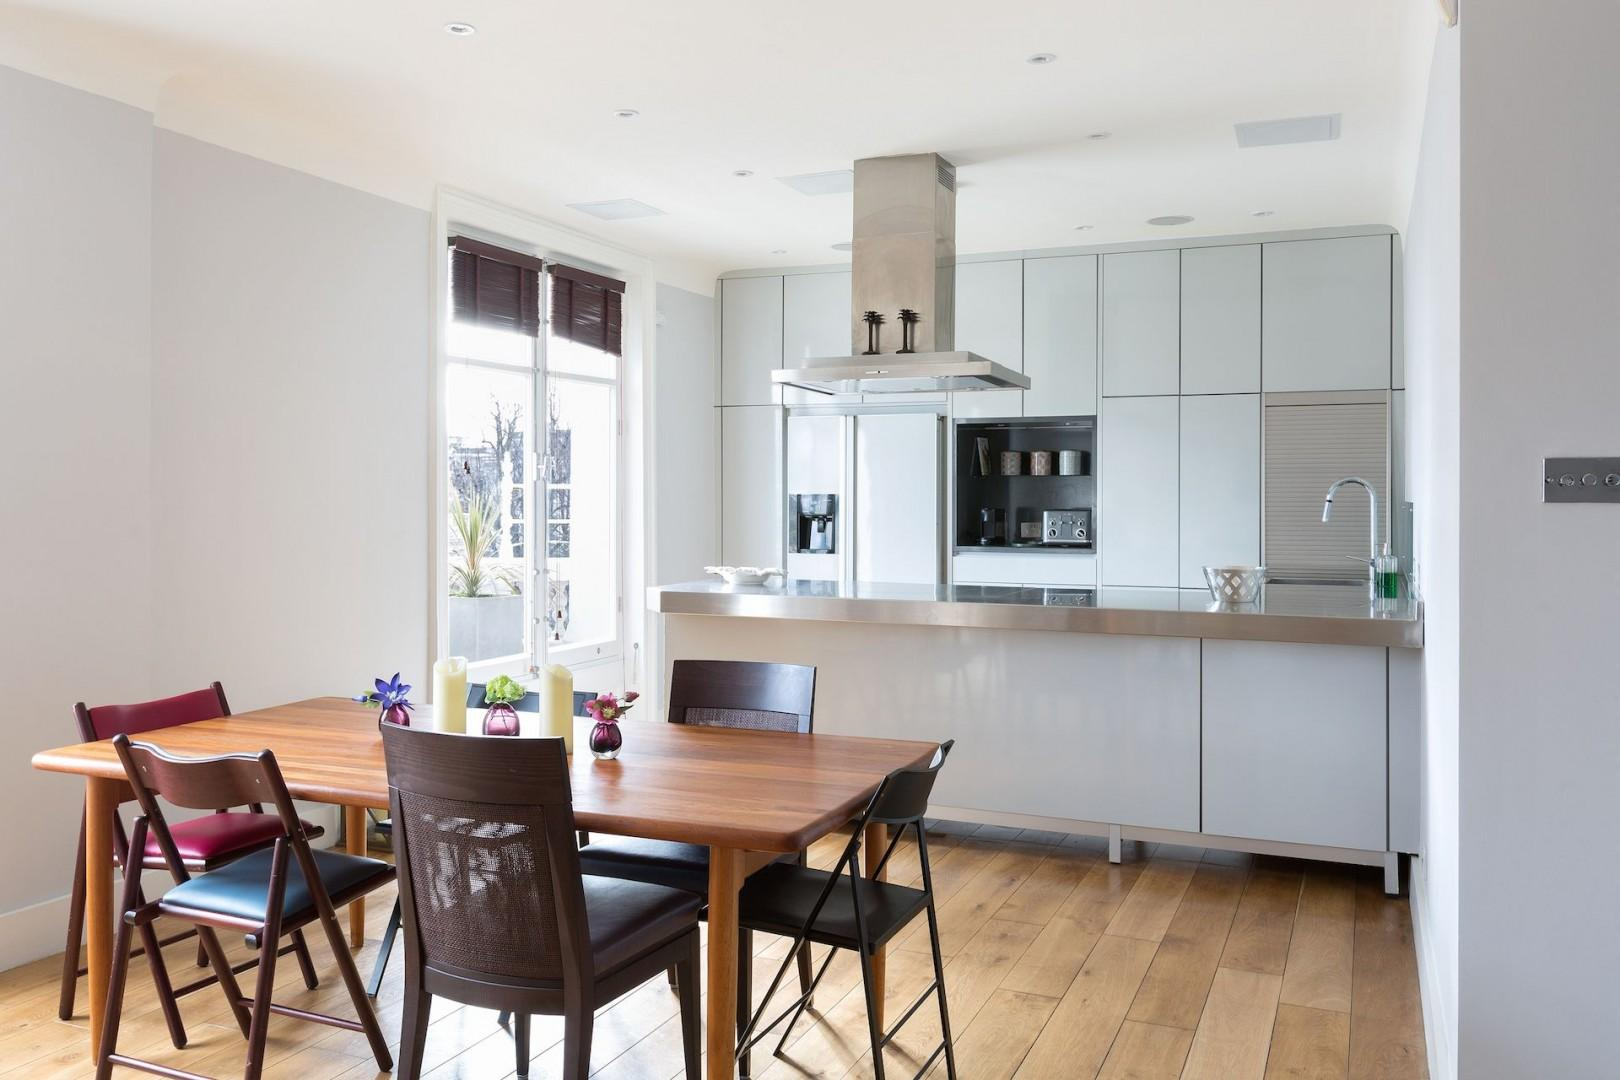 The kitchen is fully equipped with appliances and amenities